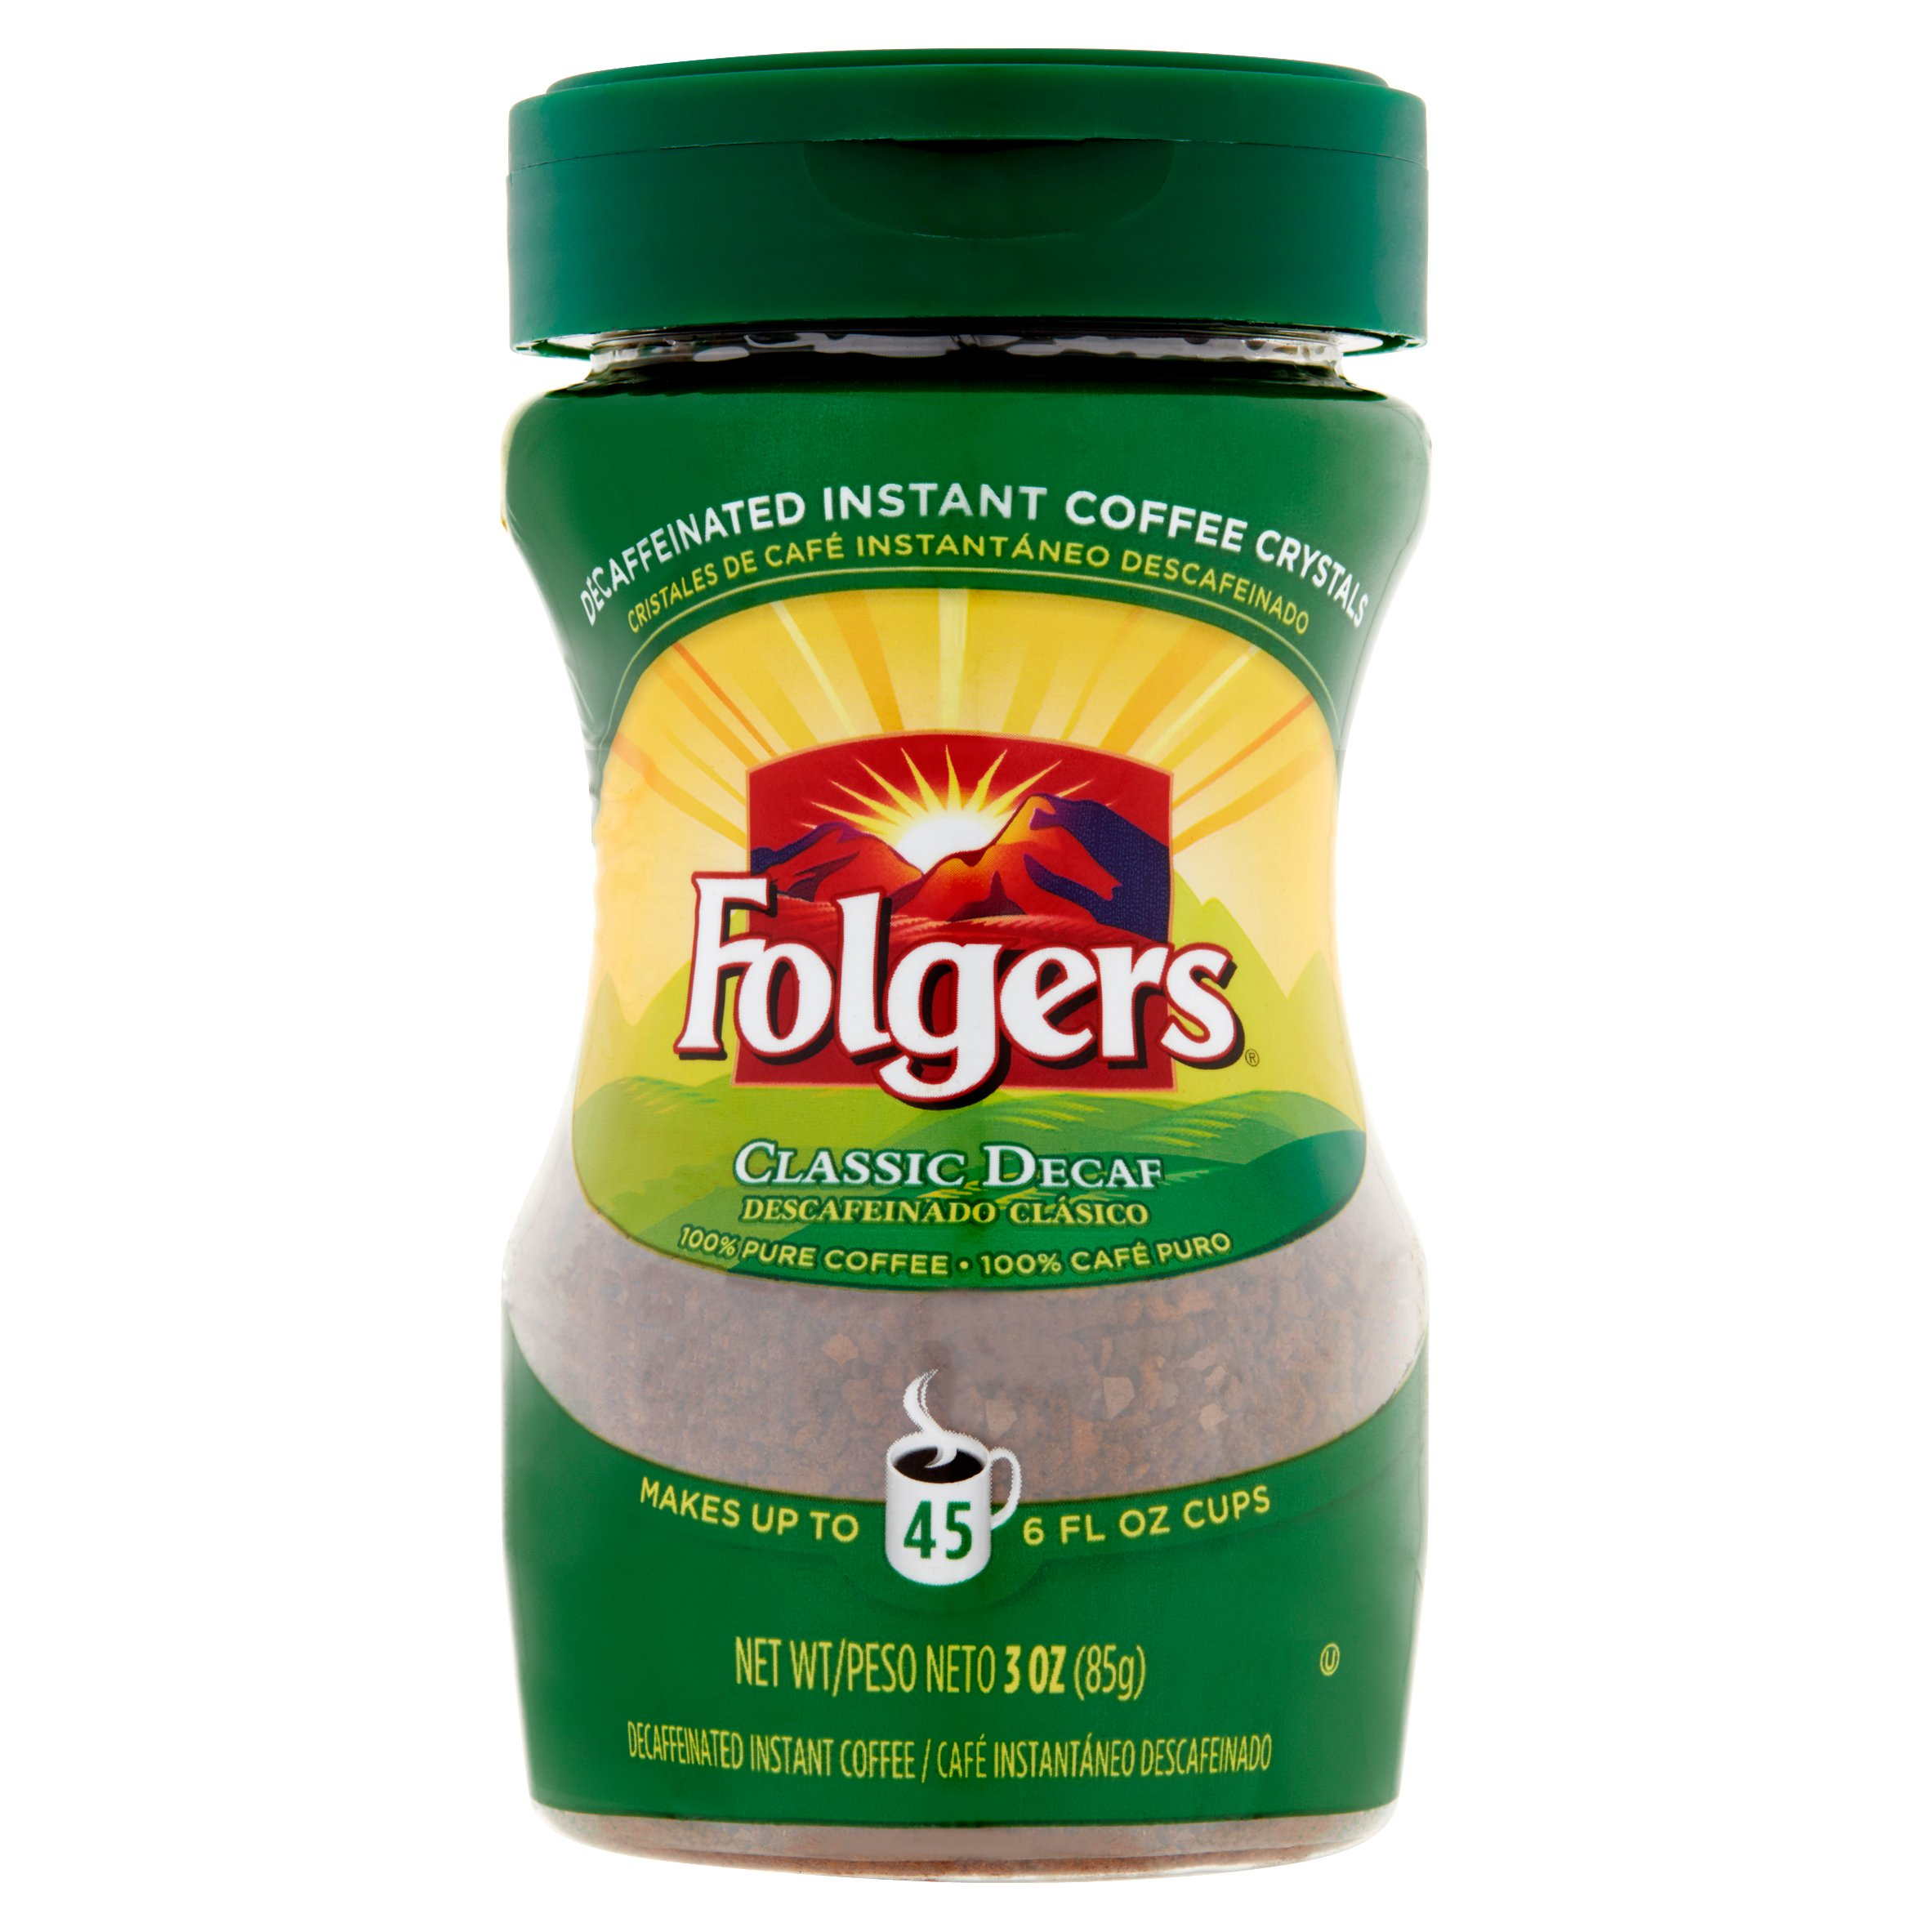 Folgers Decaf Instant Coffee, Special Roast, 3 Oz